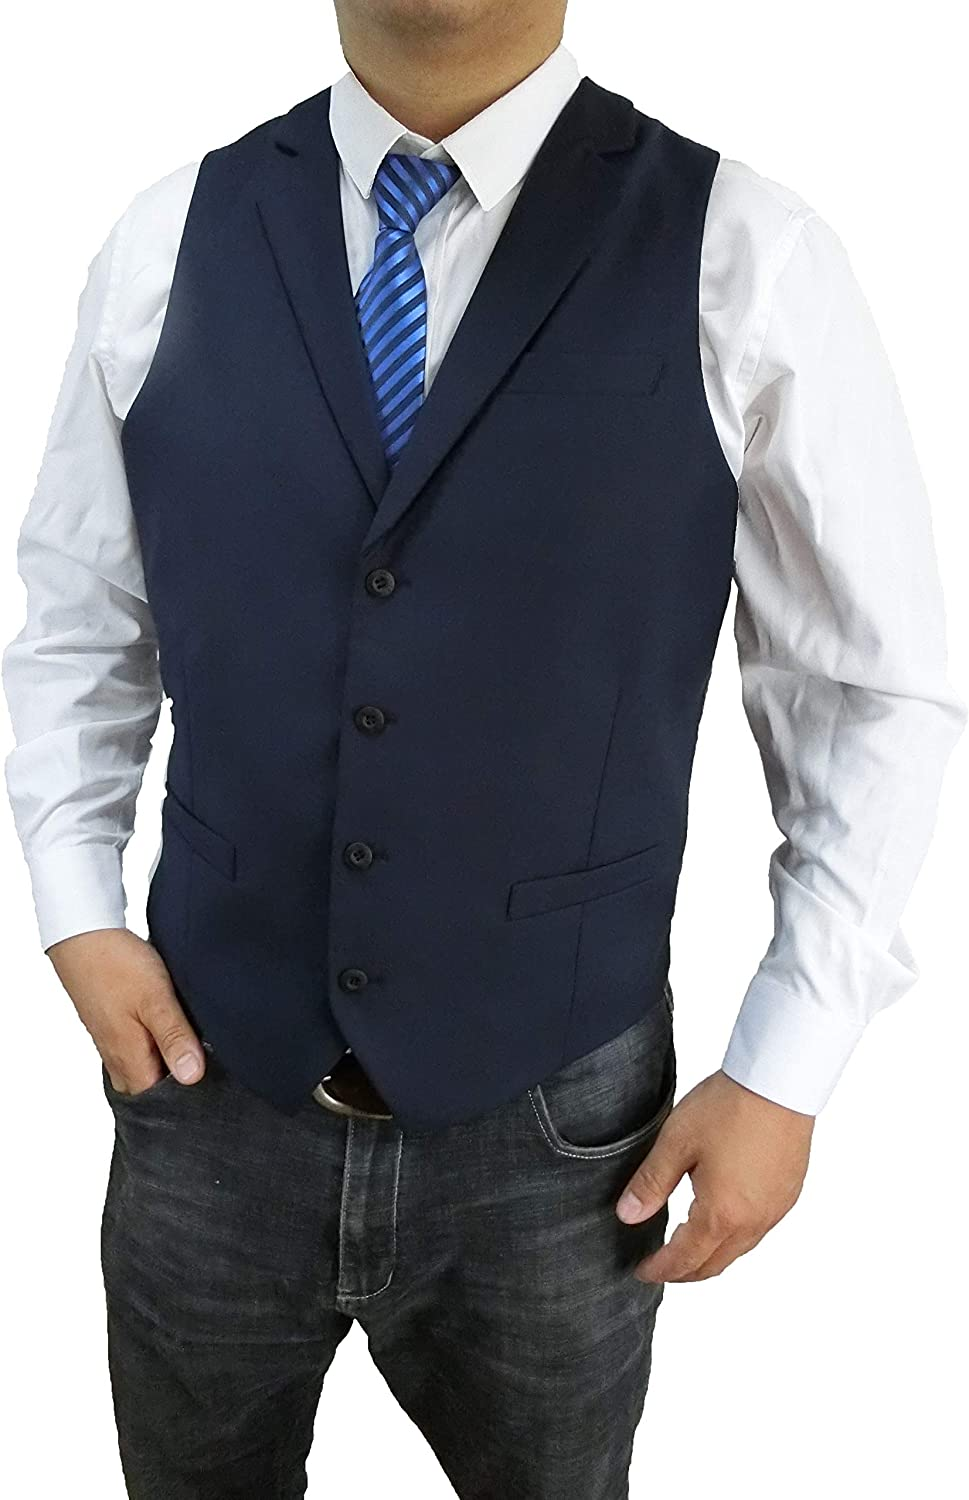 Anlyimeg Men's 4 Buttons 3 Pockets Business Wedding Vest